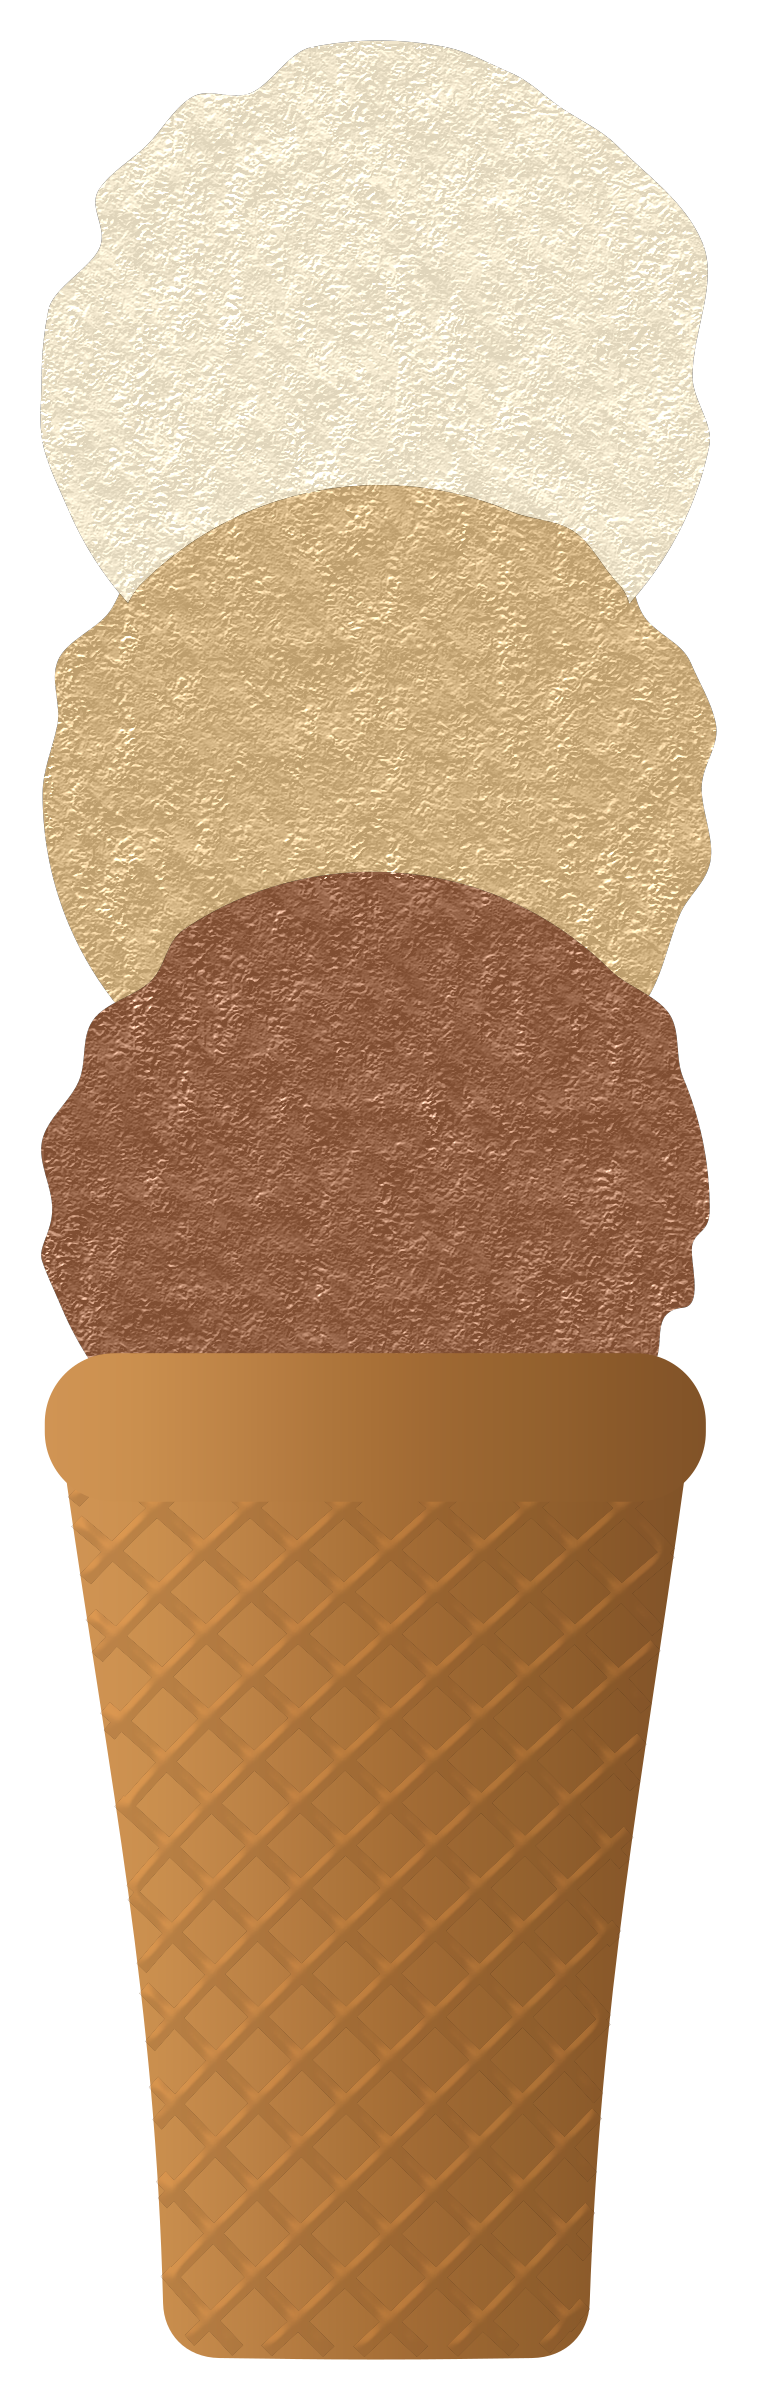 Ice Cream Cone by Arvin61r58